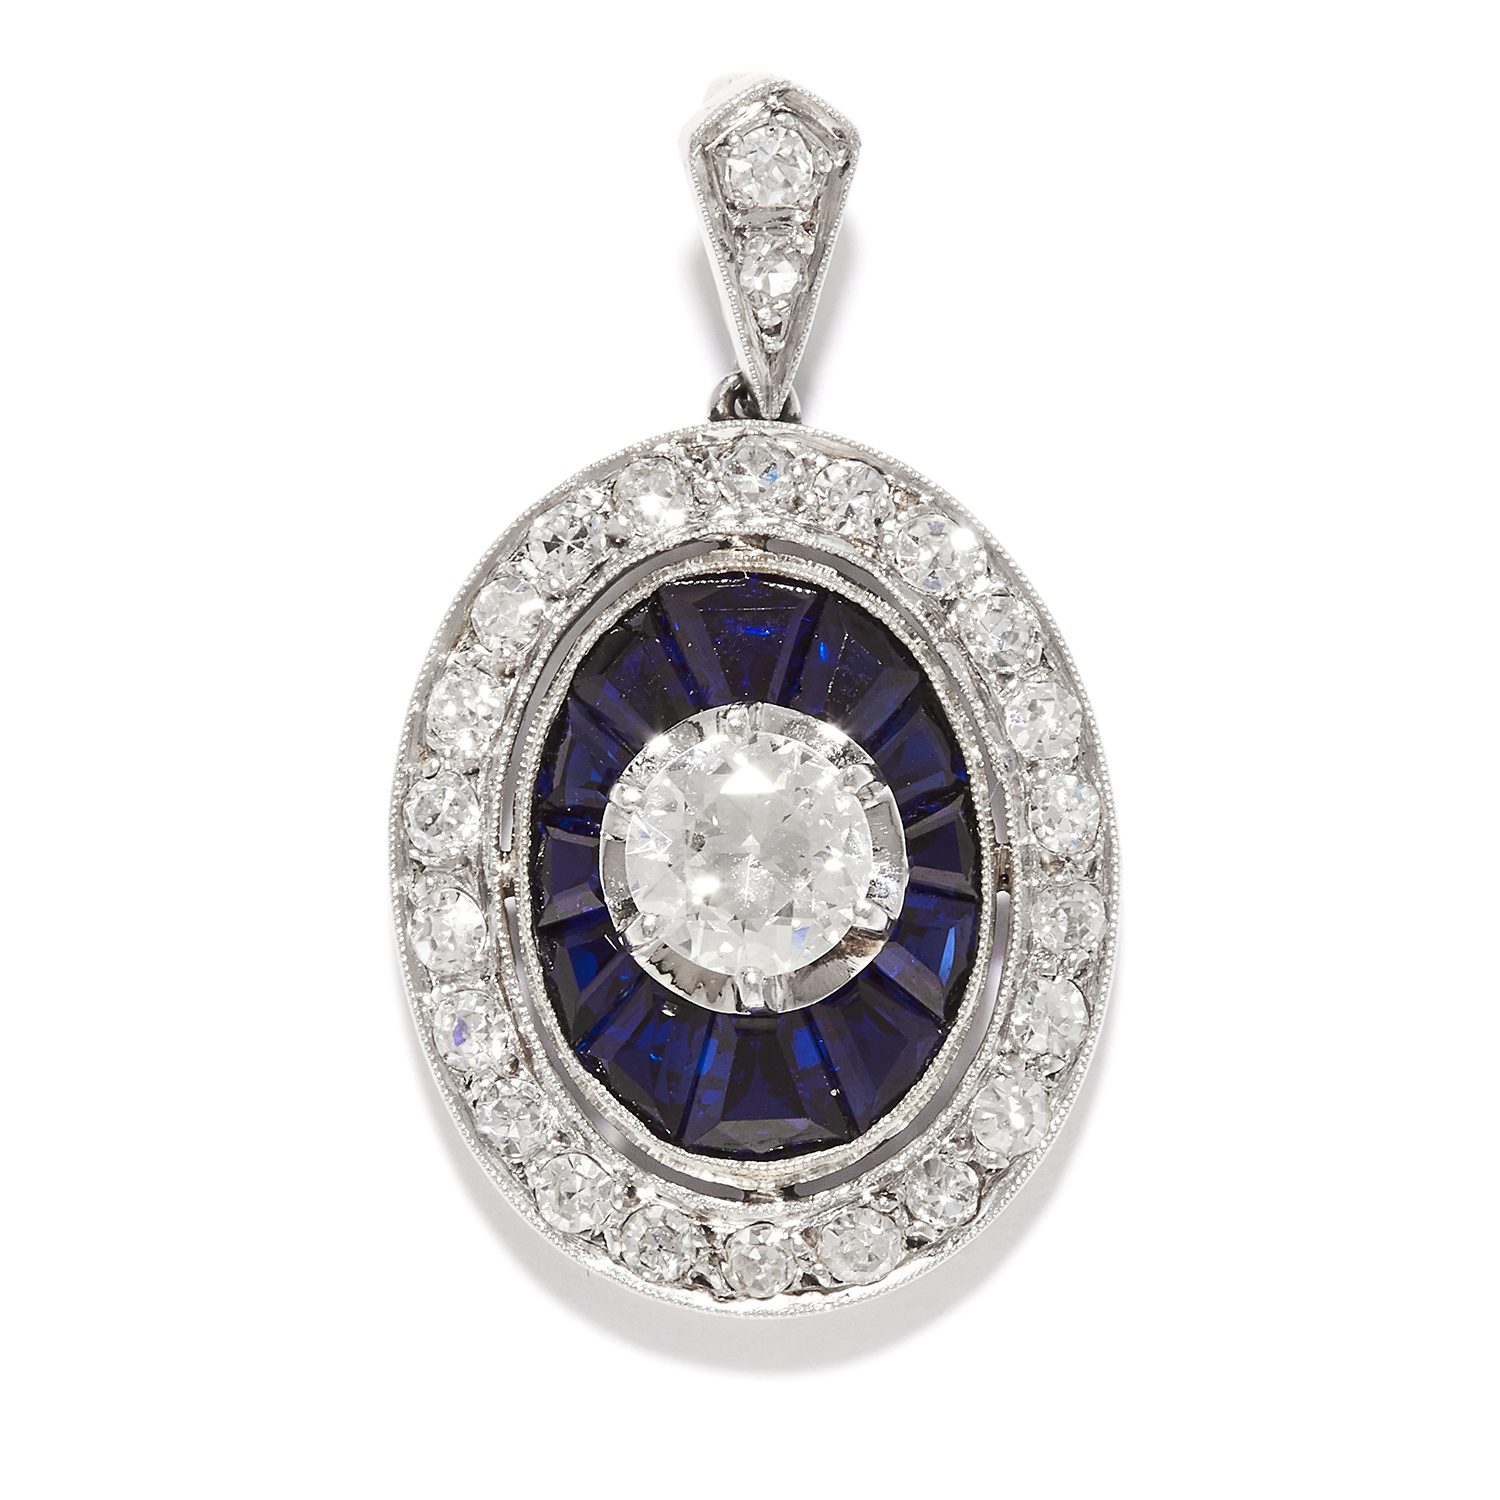 Los 22 - DIAMOND AND SAPPHIRE PENDANT in platinum, the central round cut diamond of 0.50 carats within